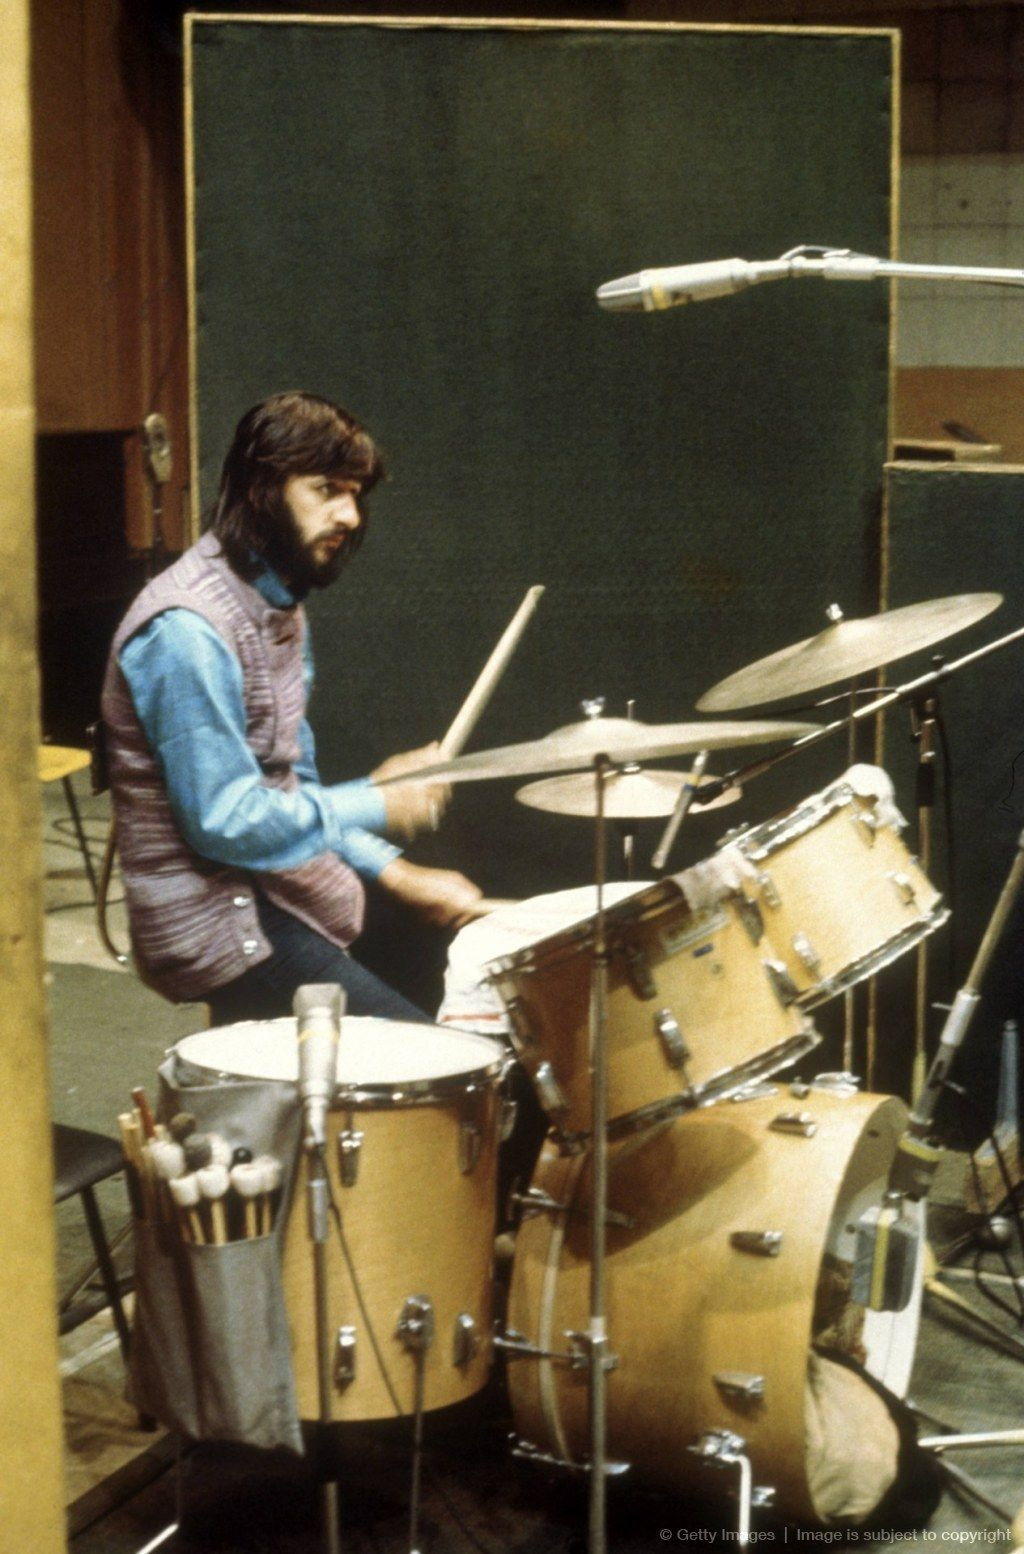 Ringo Starr Playing The Drums In The Recording Studio During Sessions For Bb King In London He Looks Like The Wolfman Ringo Starr Drums Vintage Drums